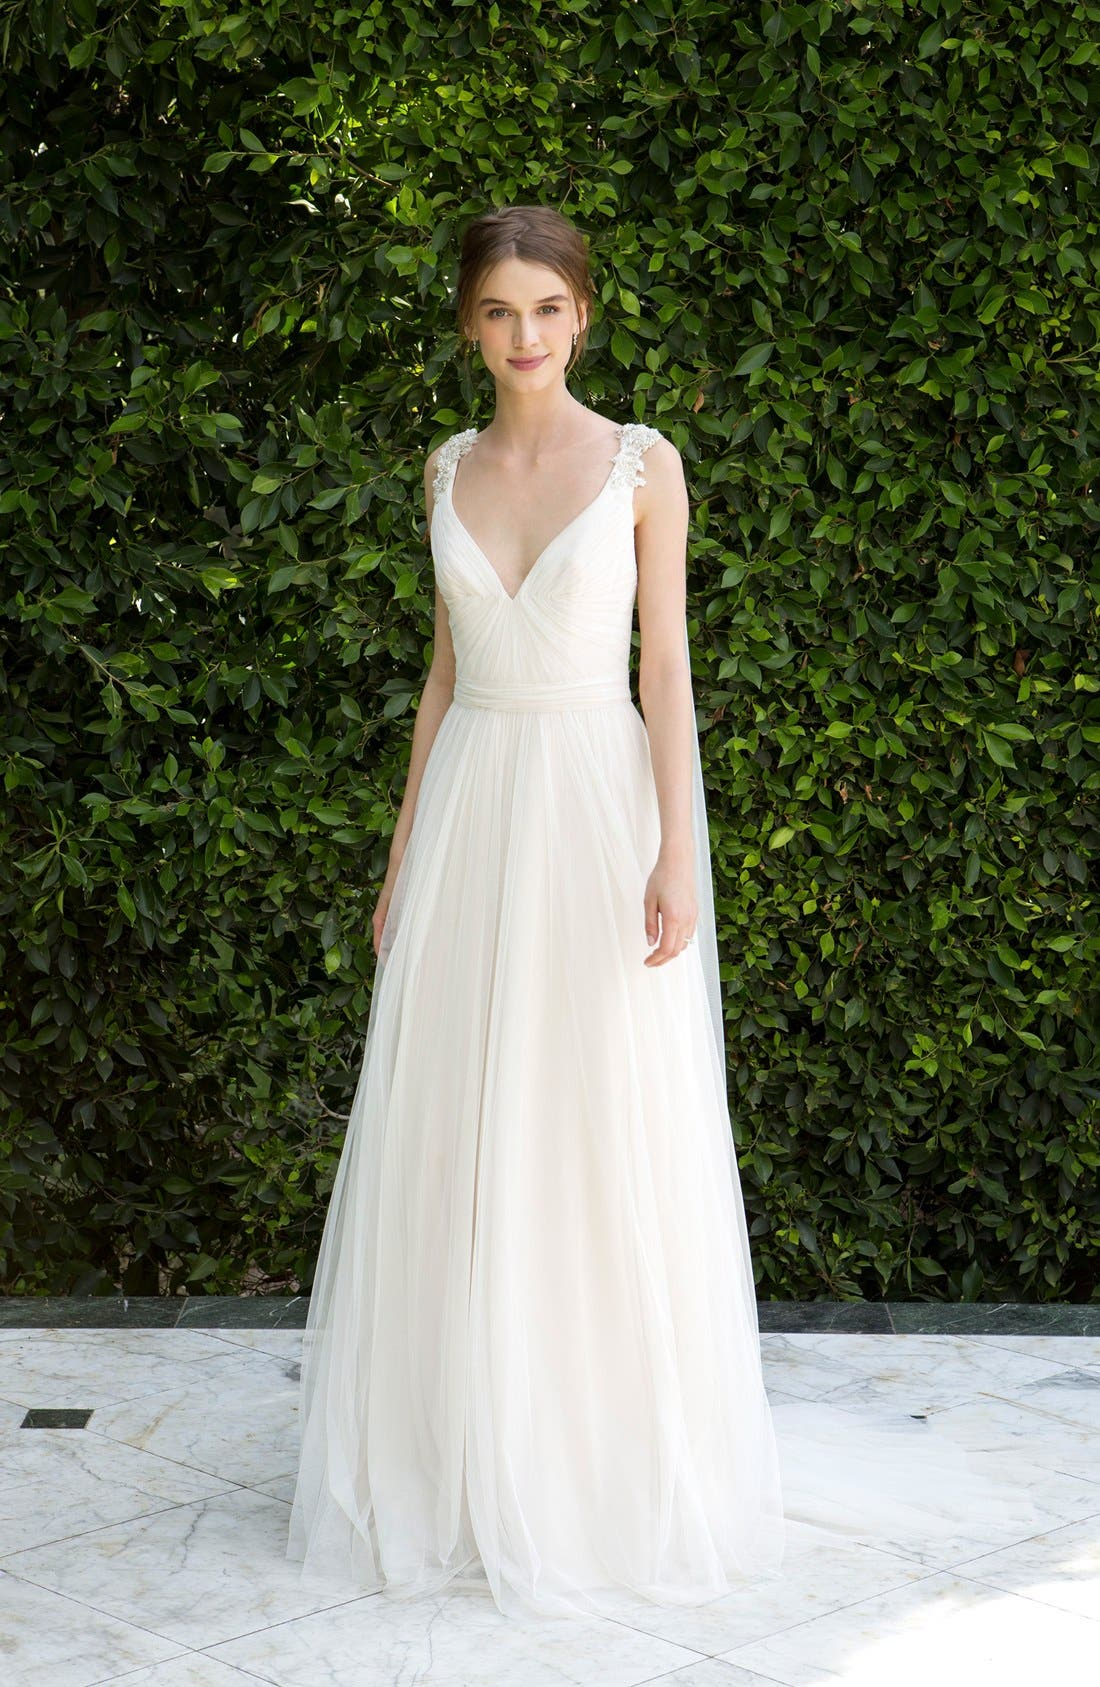 Beaded Soft Tulle Dress with Tails,                             Alternate thumbnail 4, color,                             904